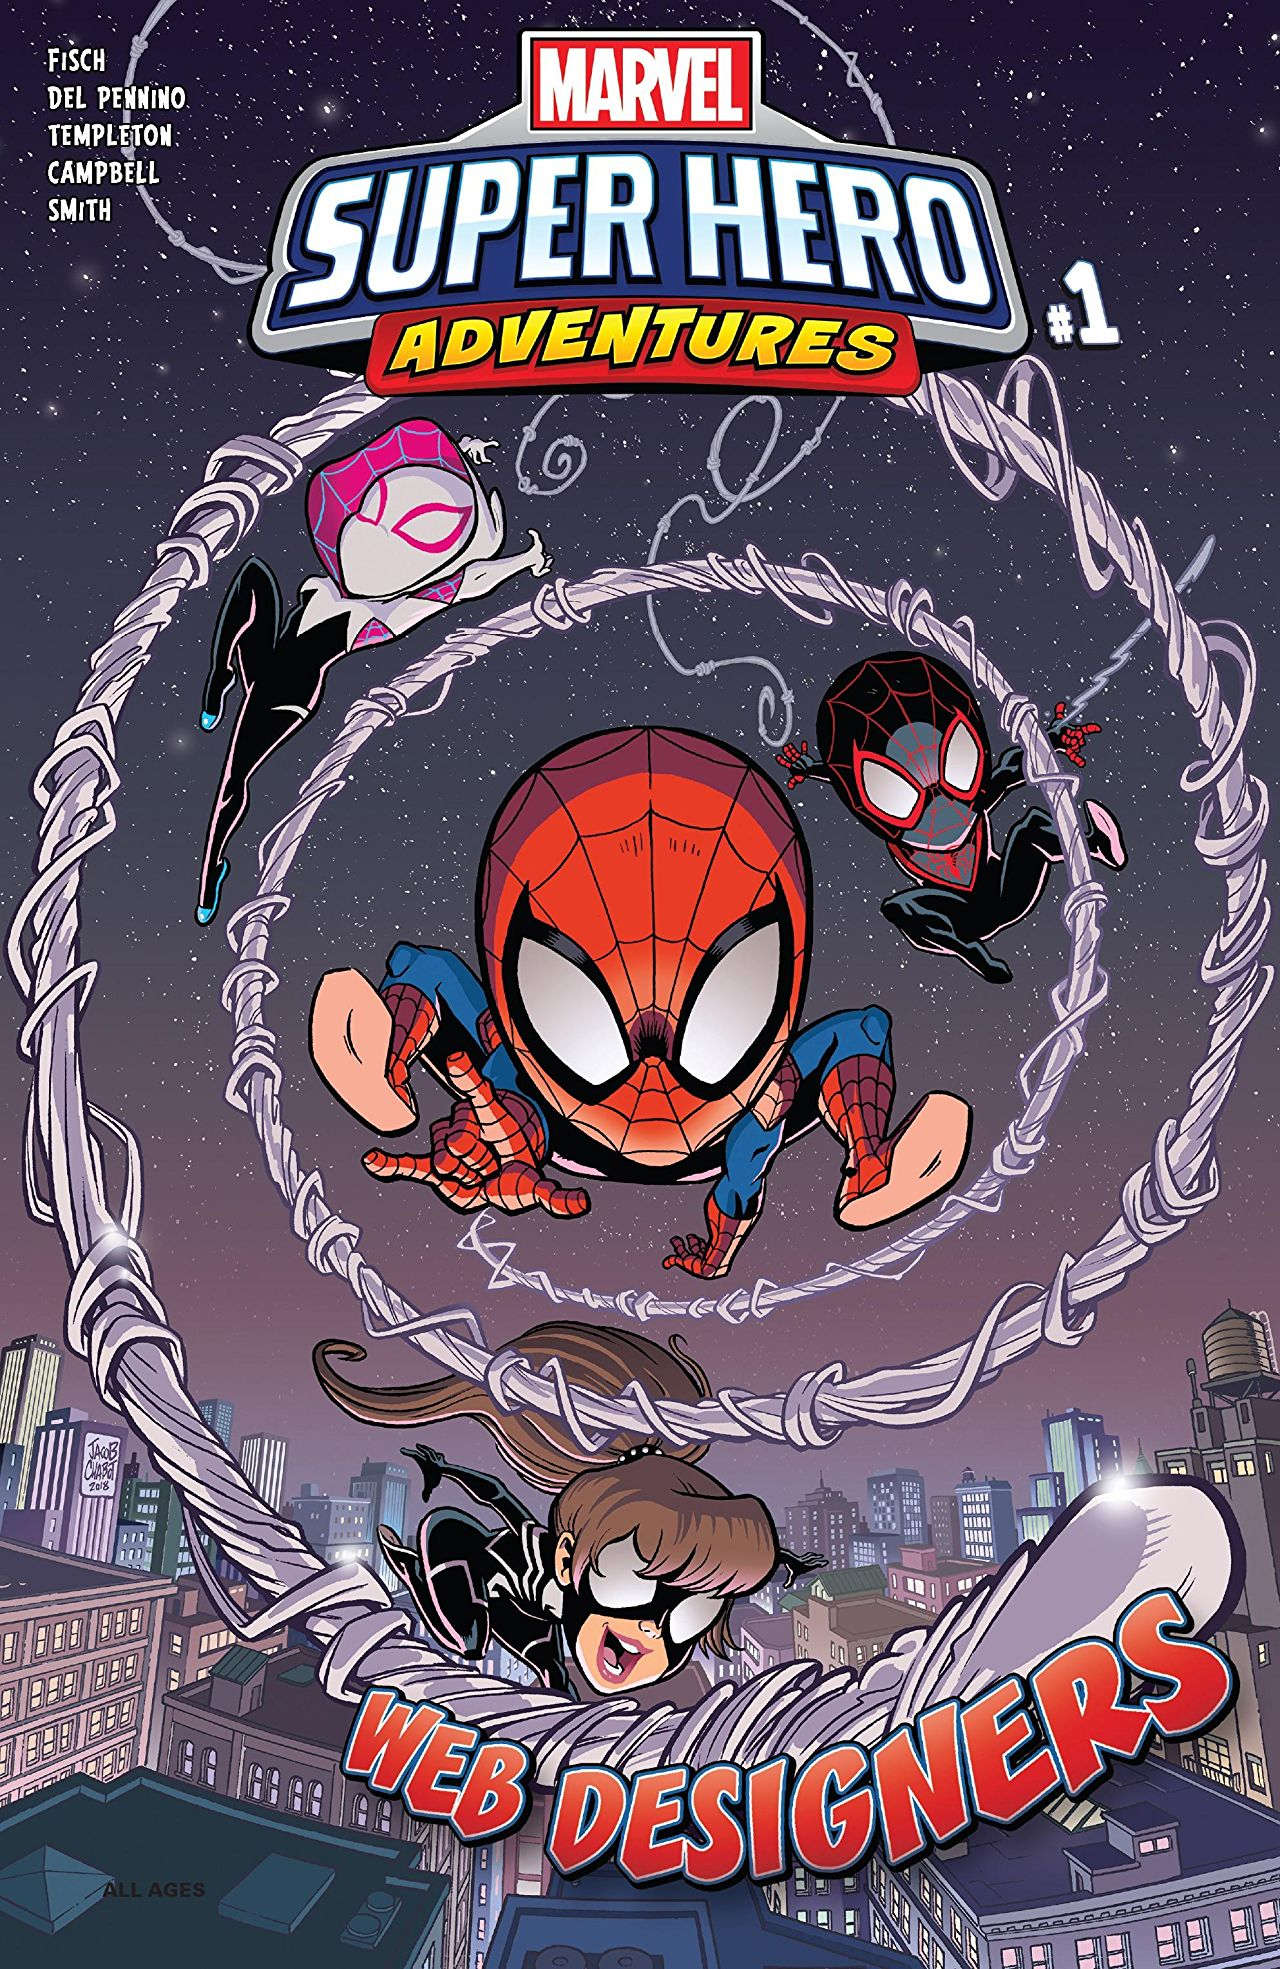 Marvel Super Hero Adventures: Spider-Man - Web Designers Vol 1 1